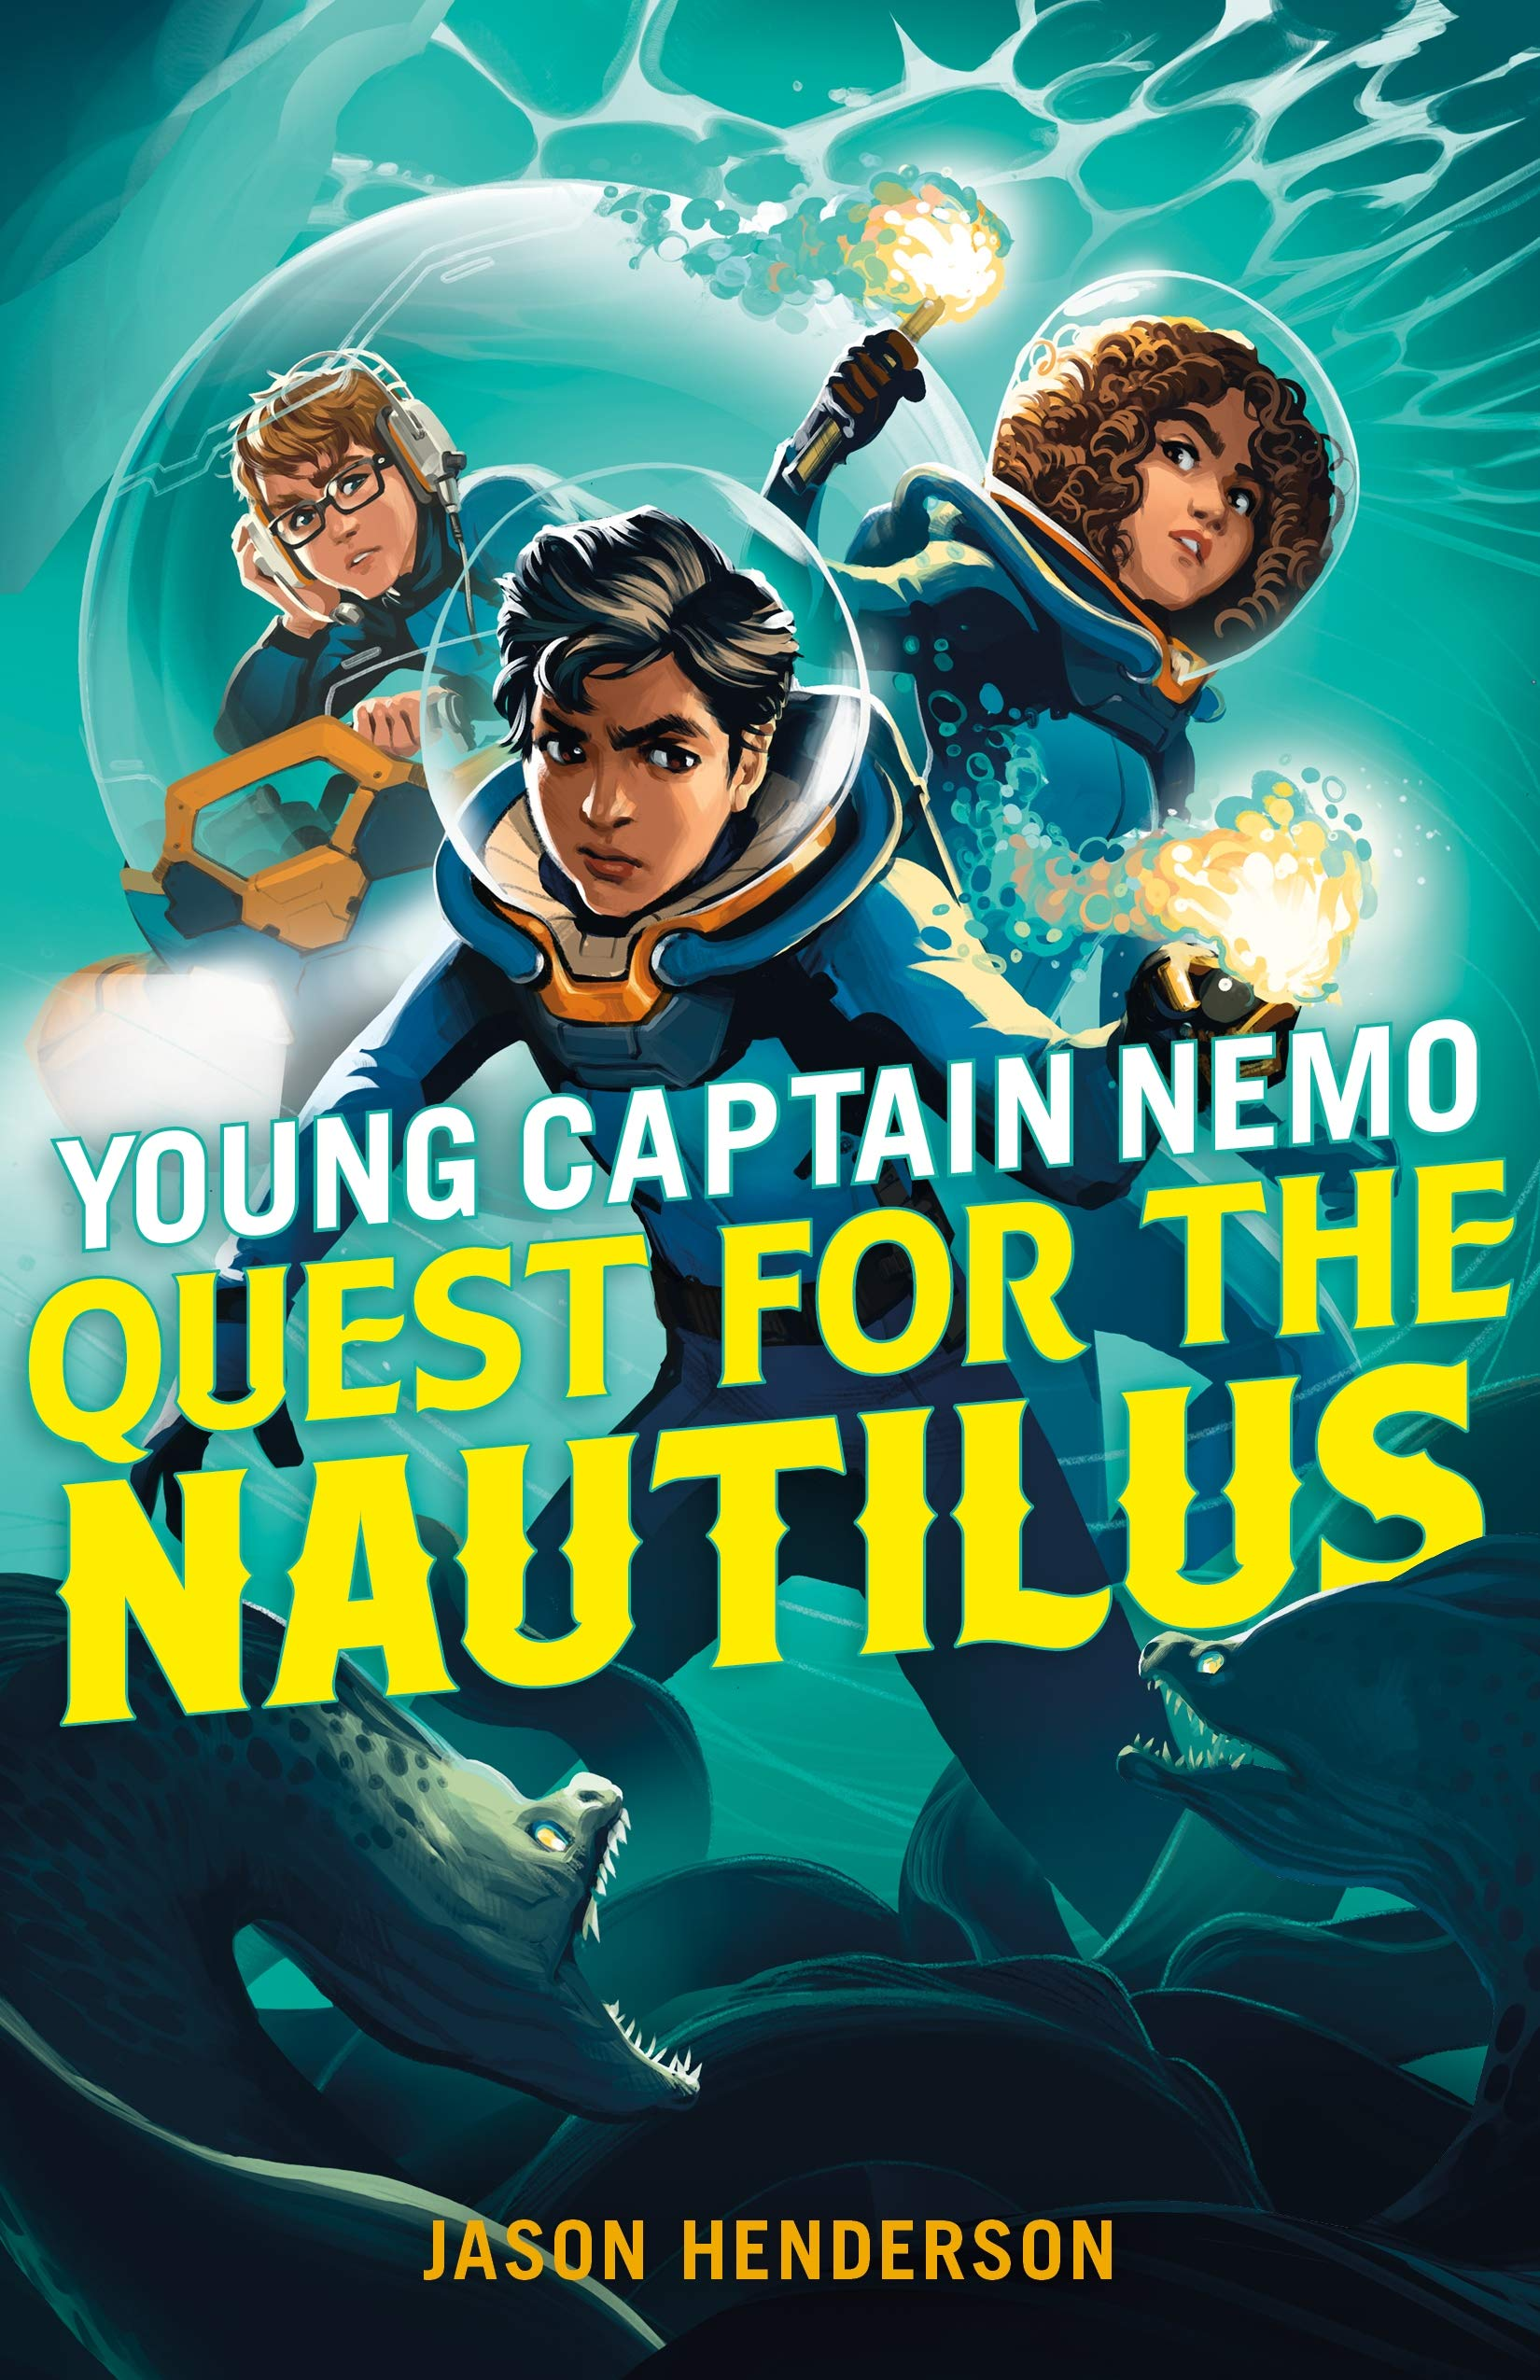 Young Captain Nemo: Quest for the Nautilus by Jason Henderson